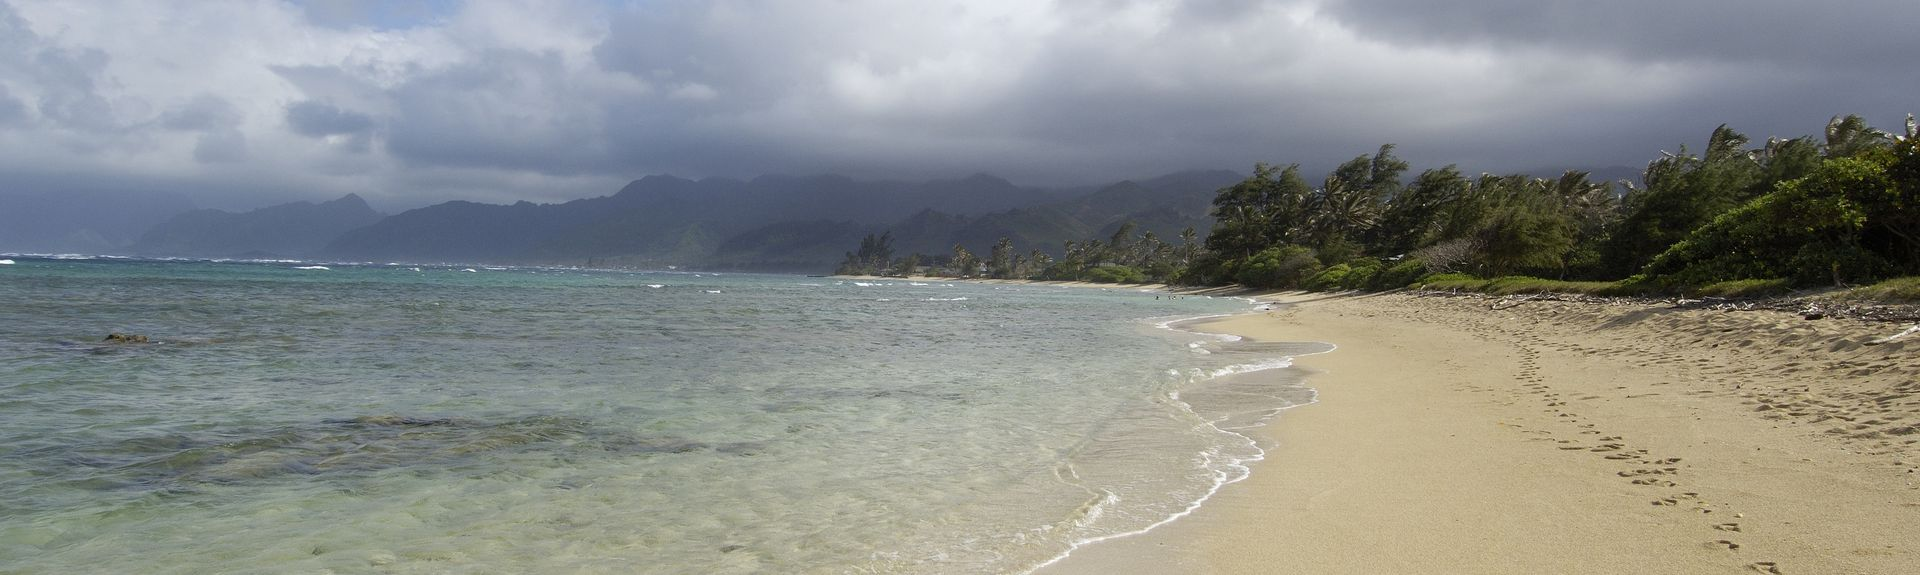 Malaekahana Beach Campground, Kahuku, Hawái, Estados Unidos